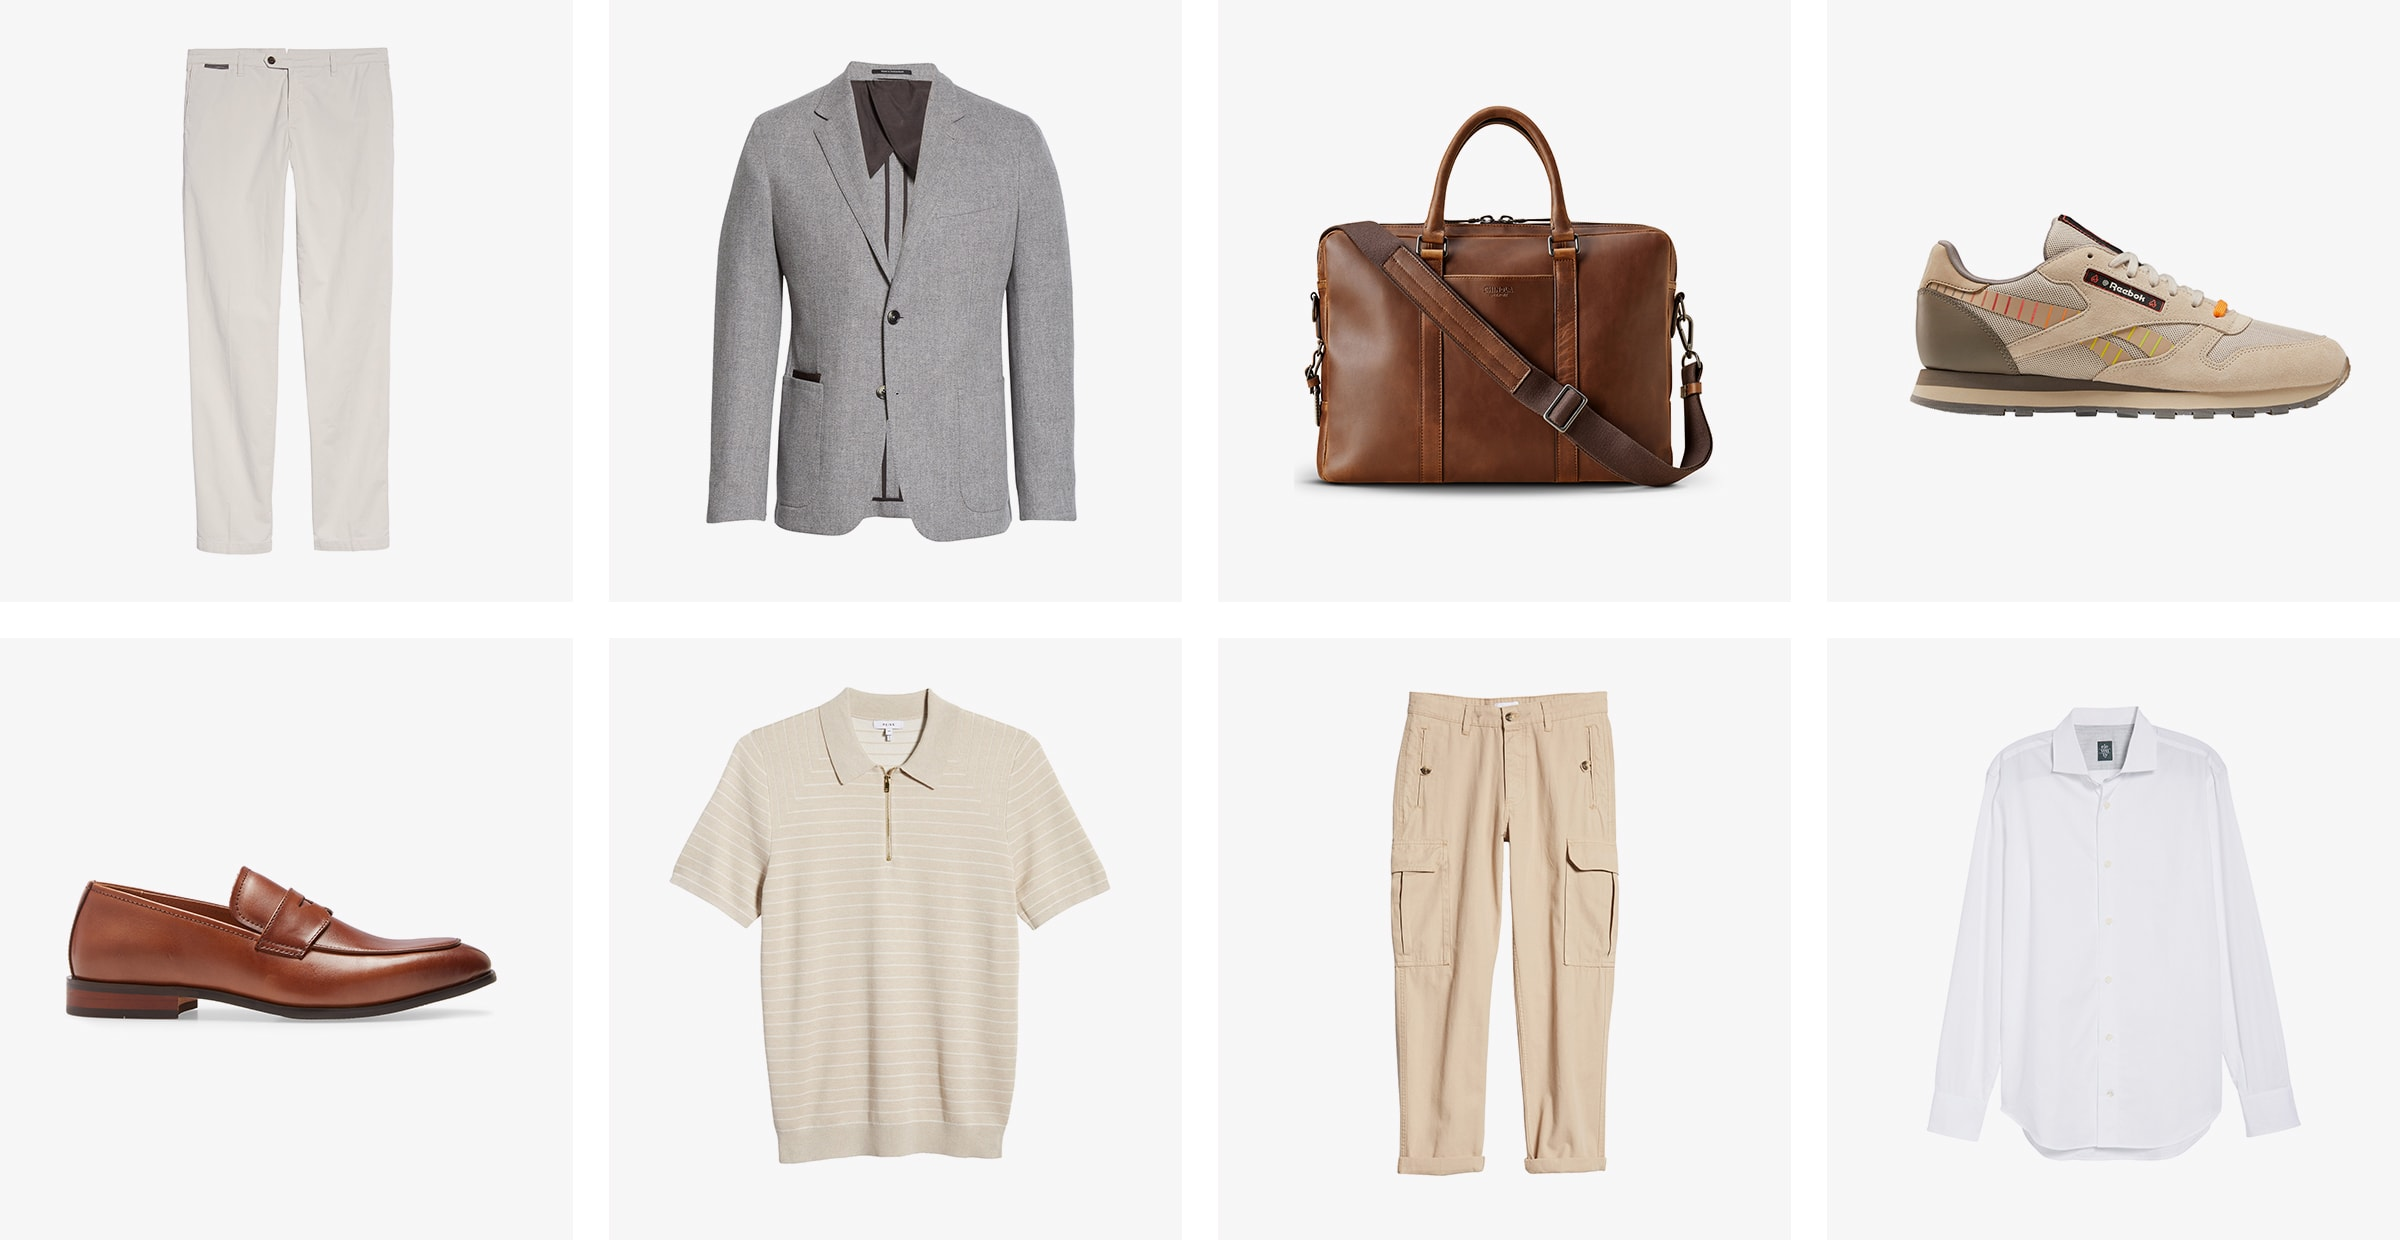 Men's pants, sport coat, briefcase, sneaker, loafer, polo shirt, cargo pants and button-down shirt.